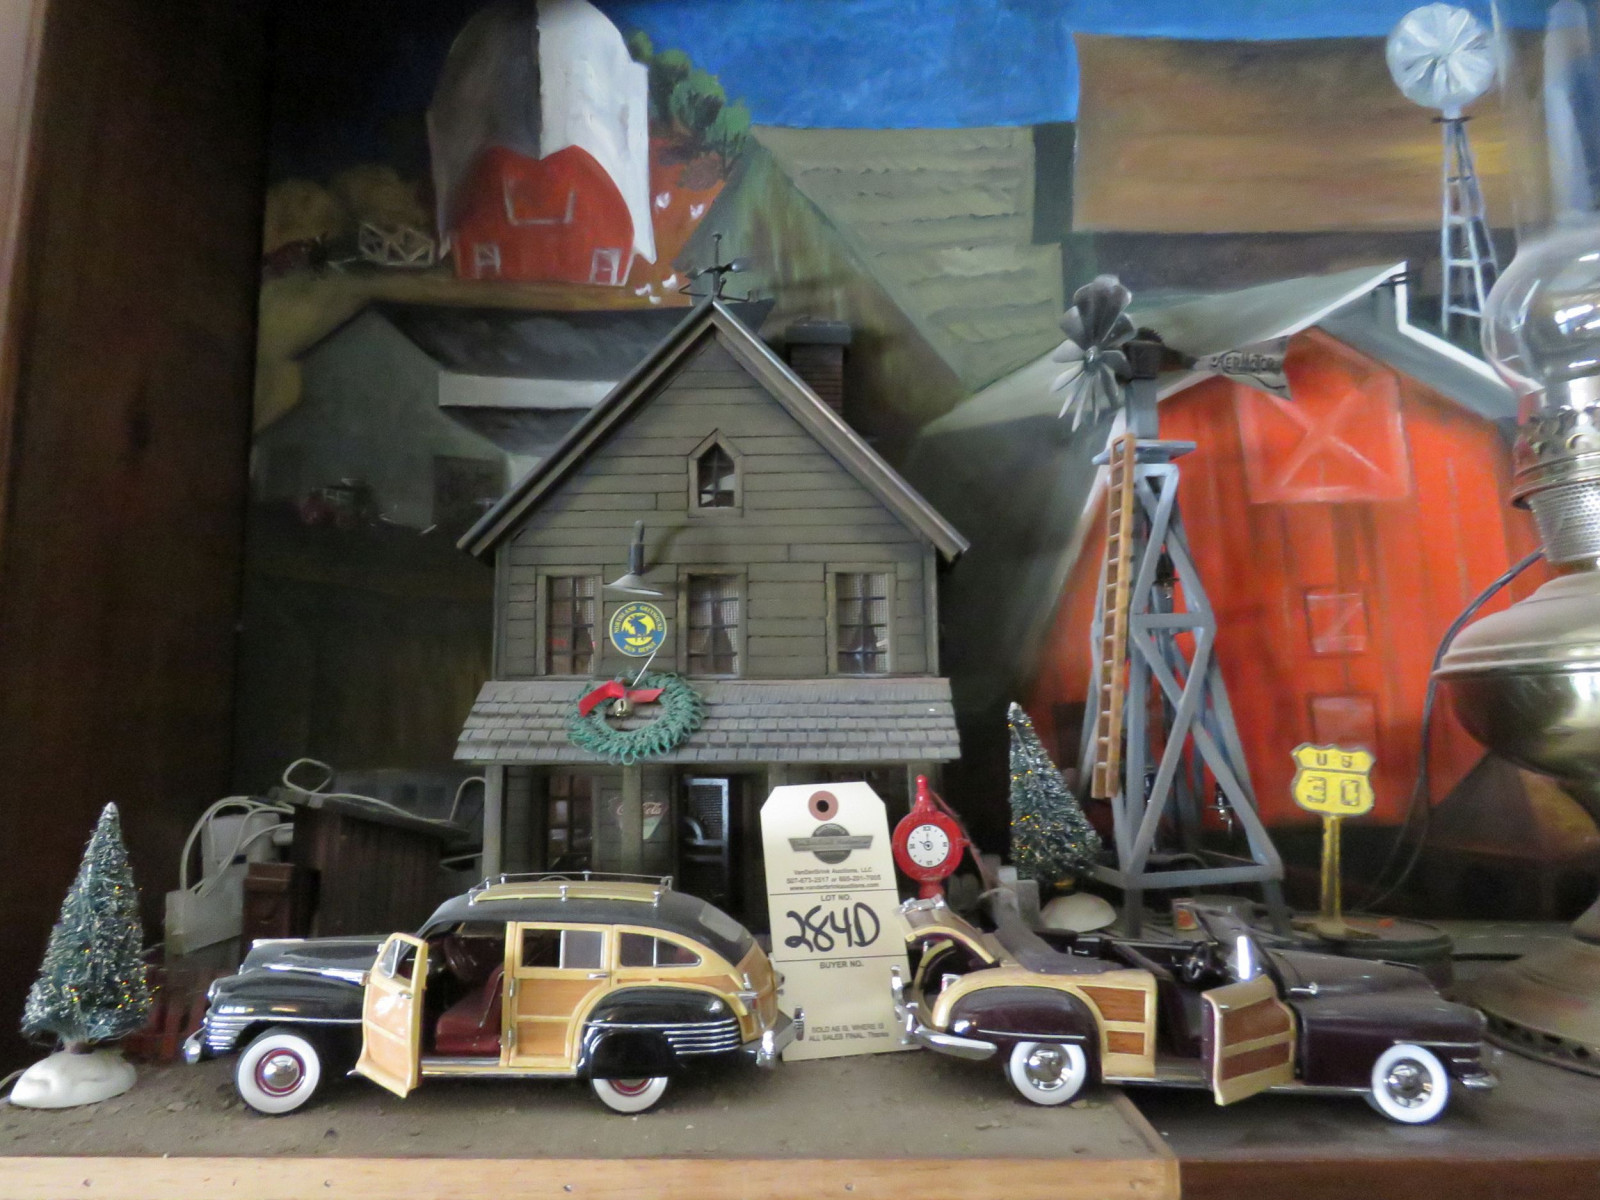 At the Lake Diorama with Vintage Cast Iron Toys - Image 1